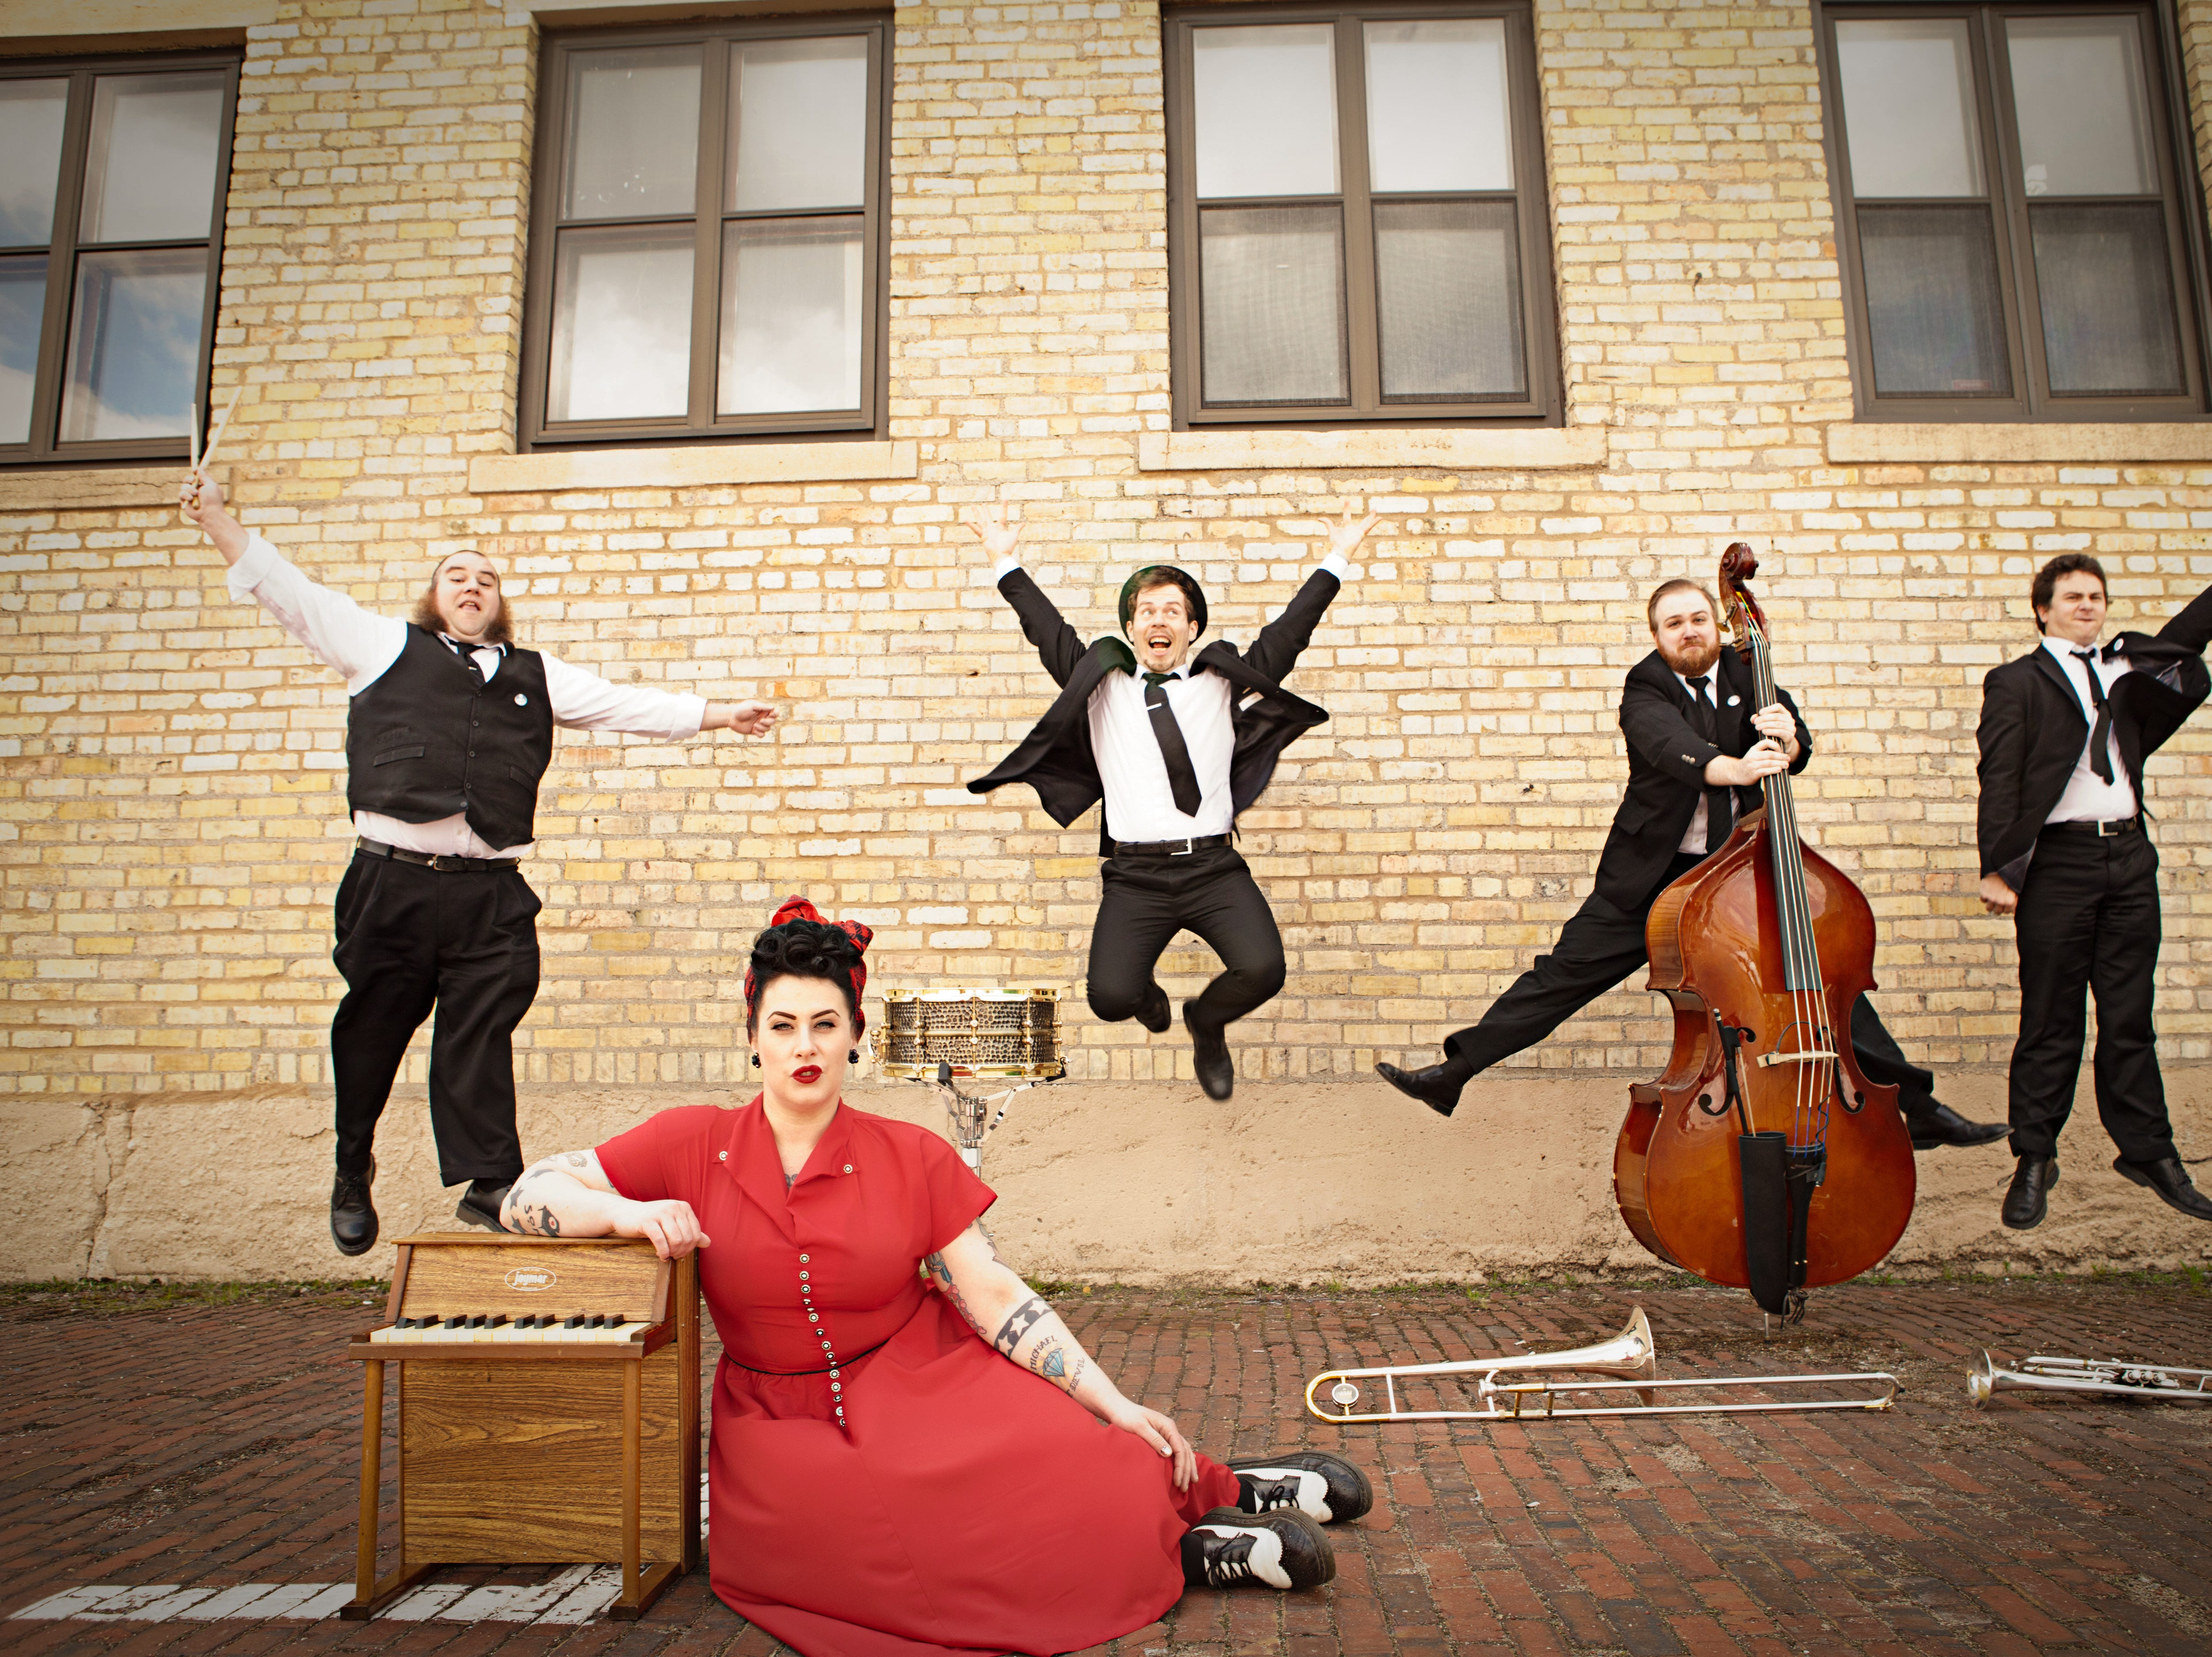 Davina and the Vagabonds vintage jazz/blues sound has earned them fans in the U.S. and Europe.